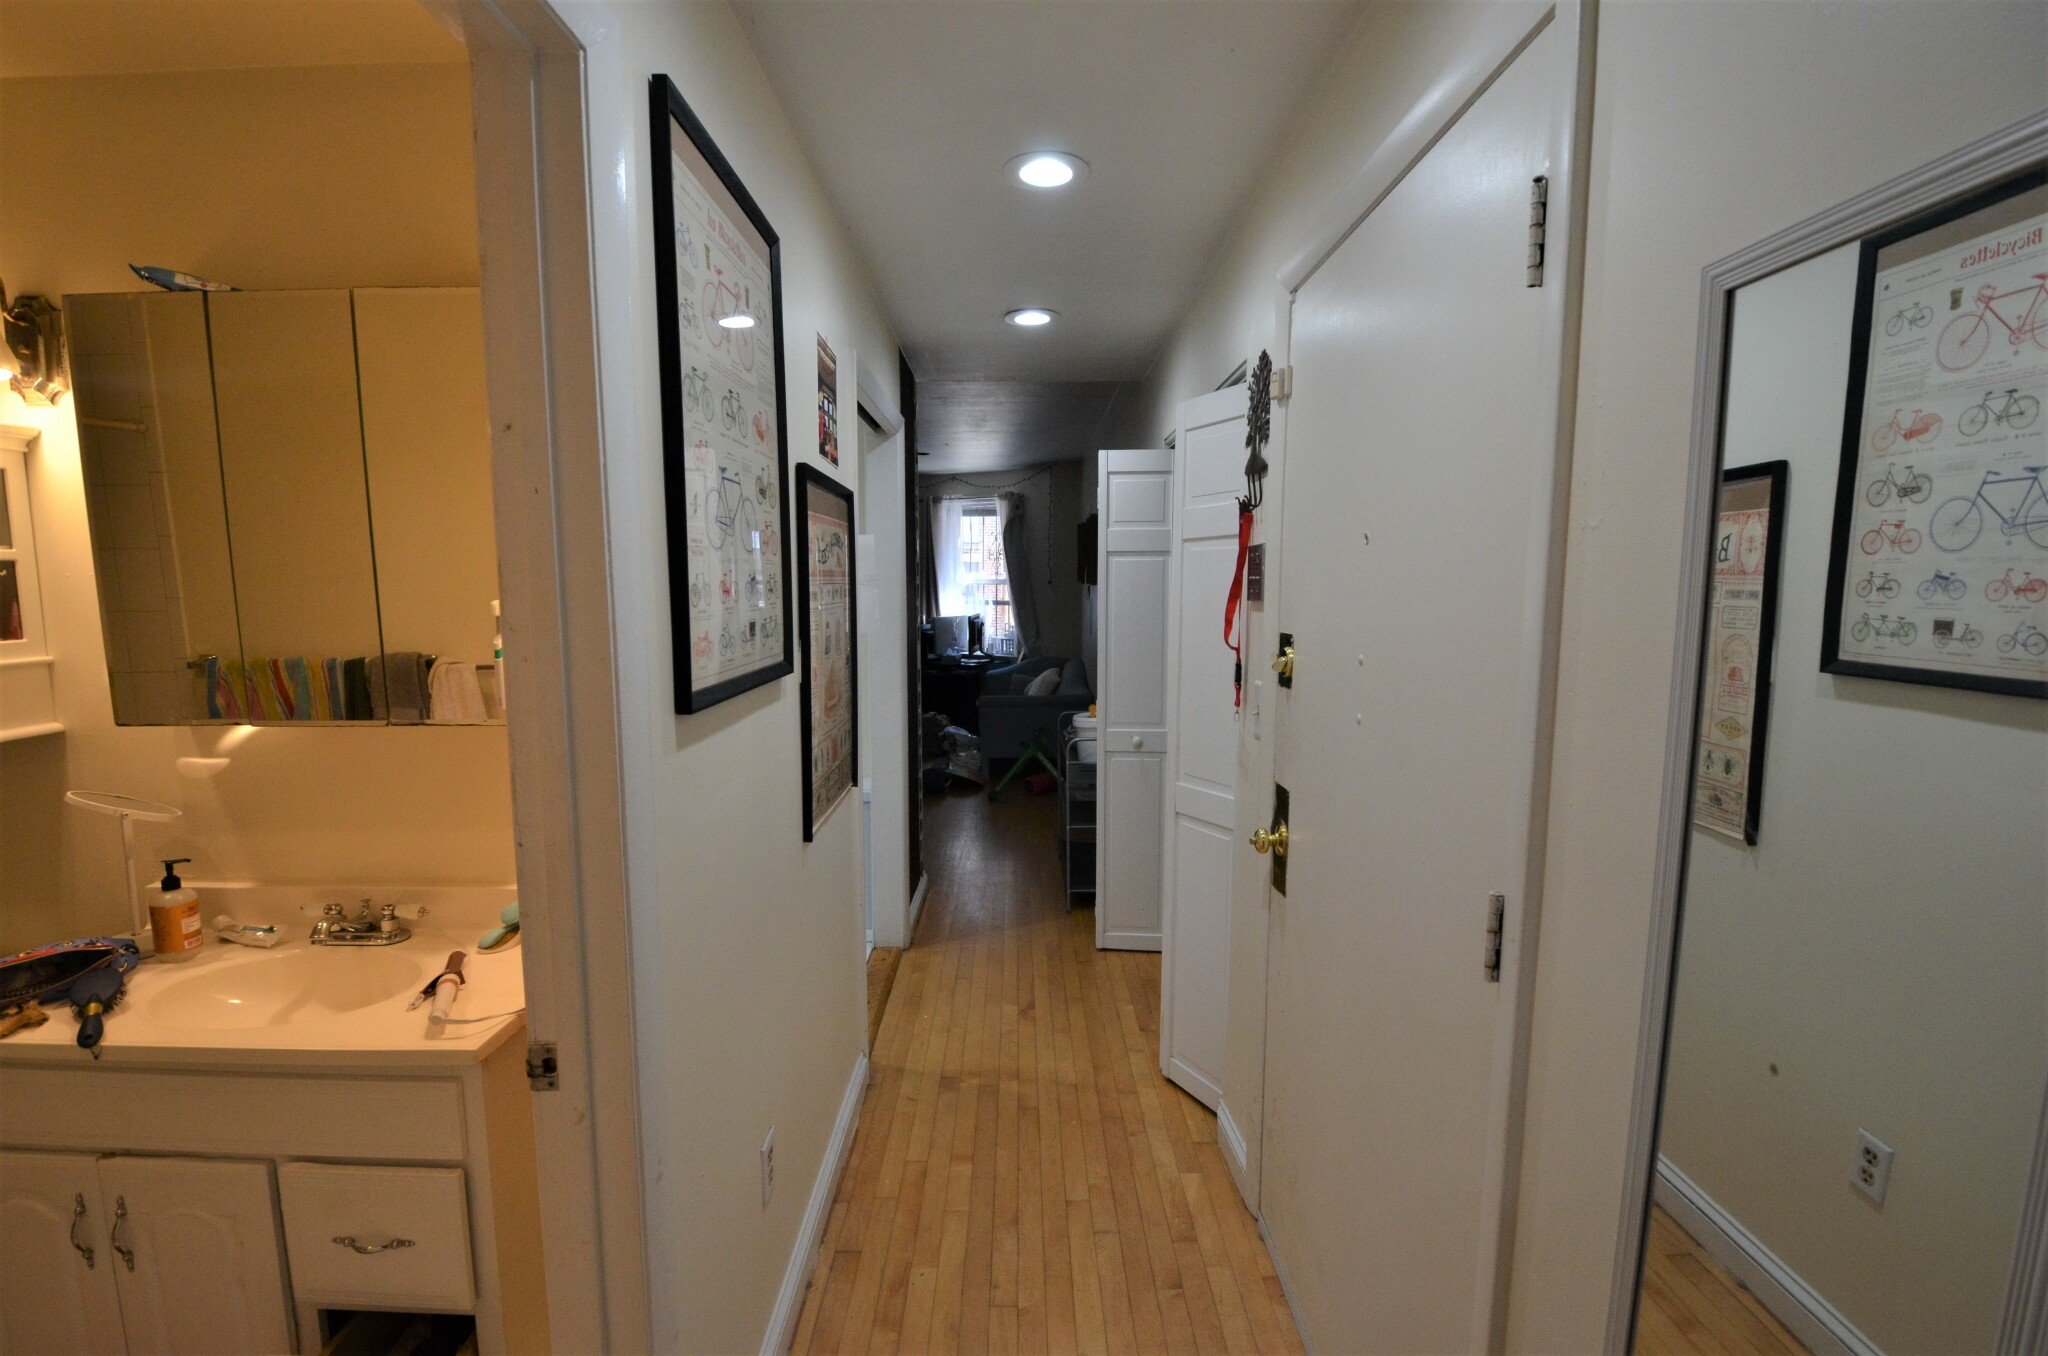 2 Beds, 1 Bath apartment in Boston for $3,225